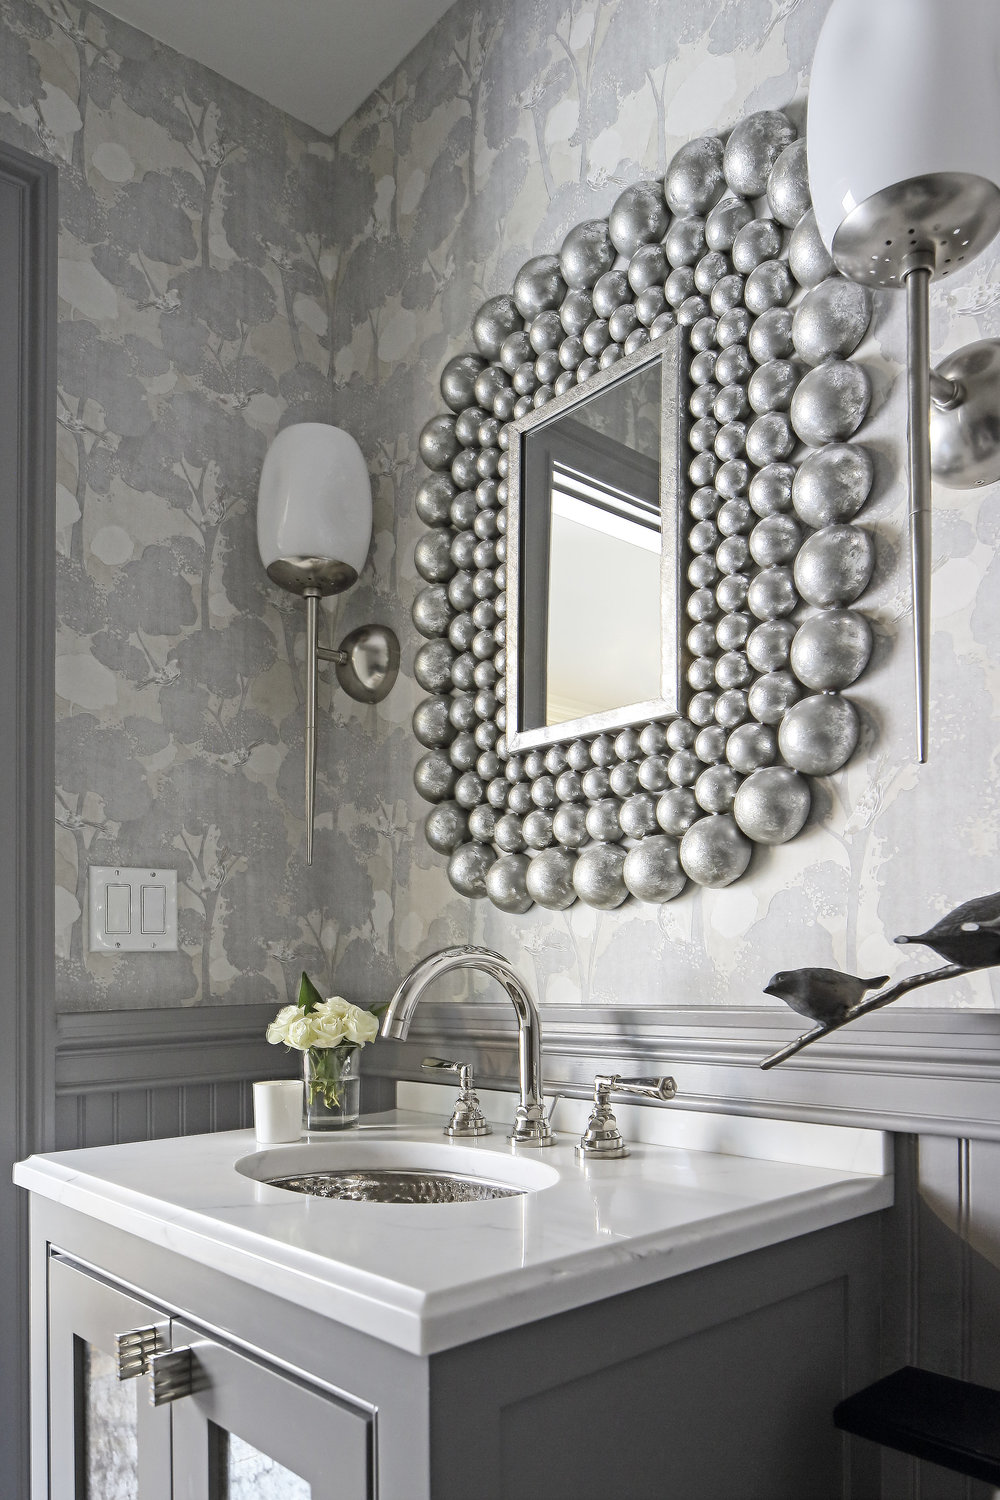 KAM DESIGN_2018_LARCHMONT_PowderRoom245.jpg